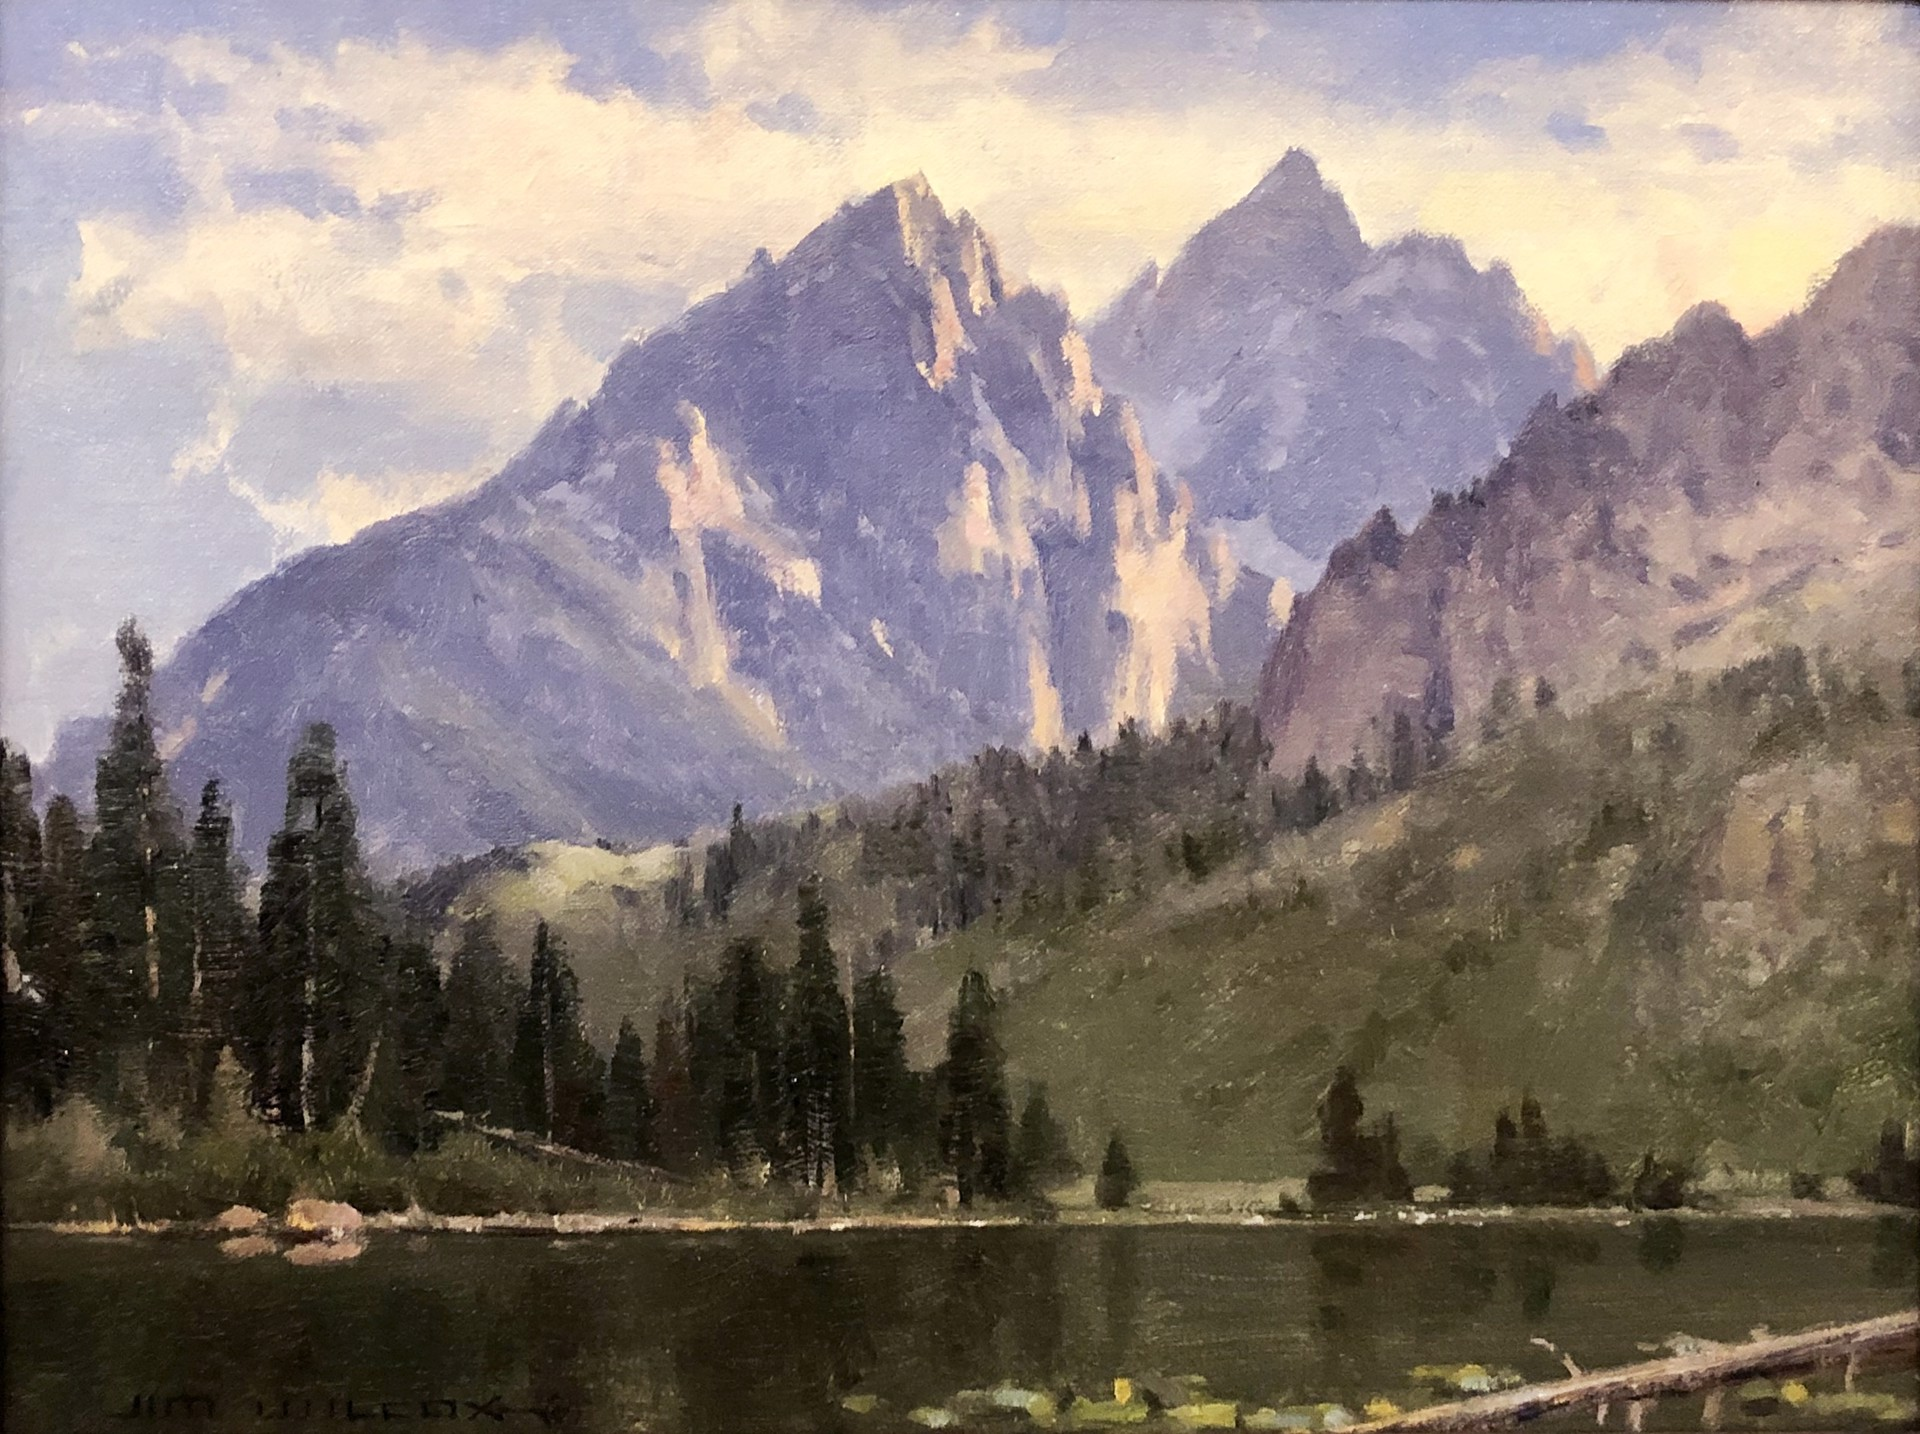 Icons of Wyoming by Jim Wilcox